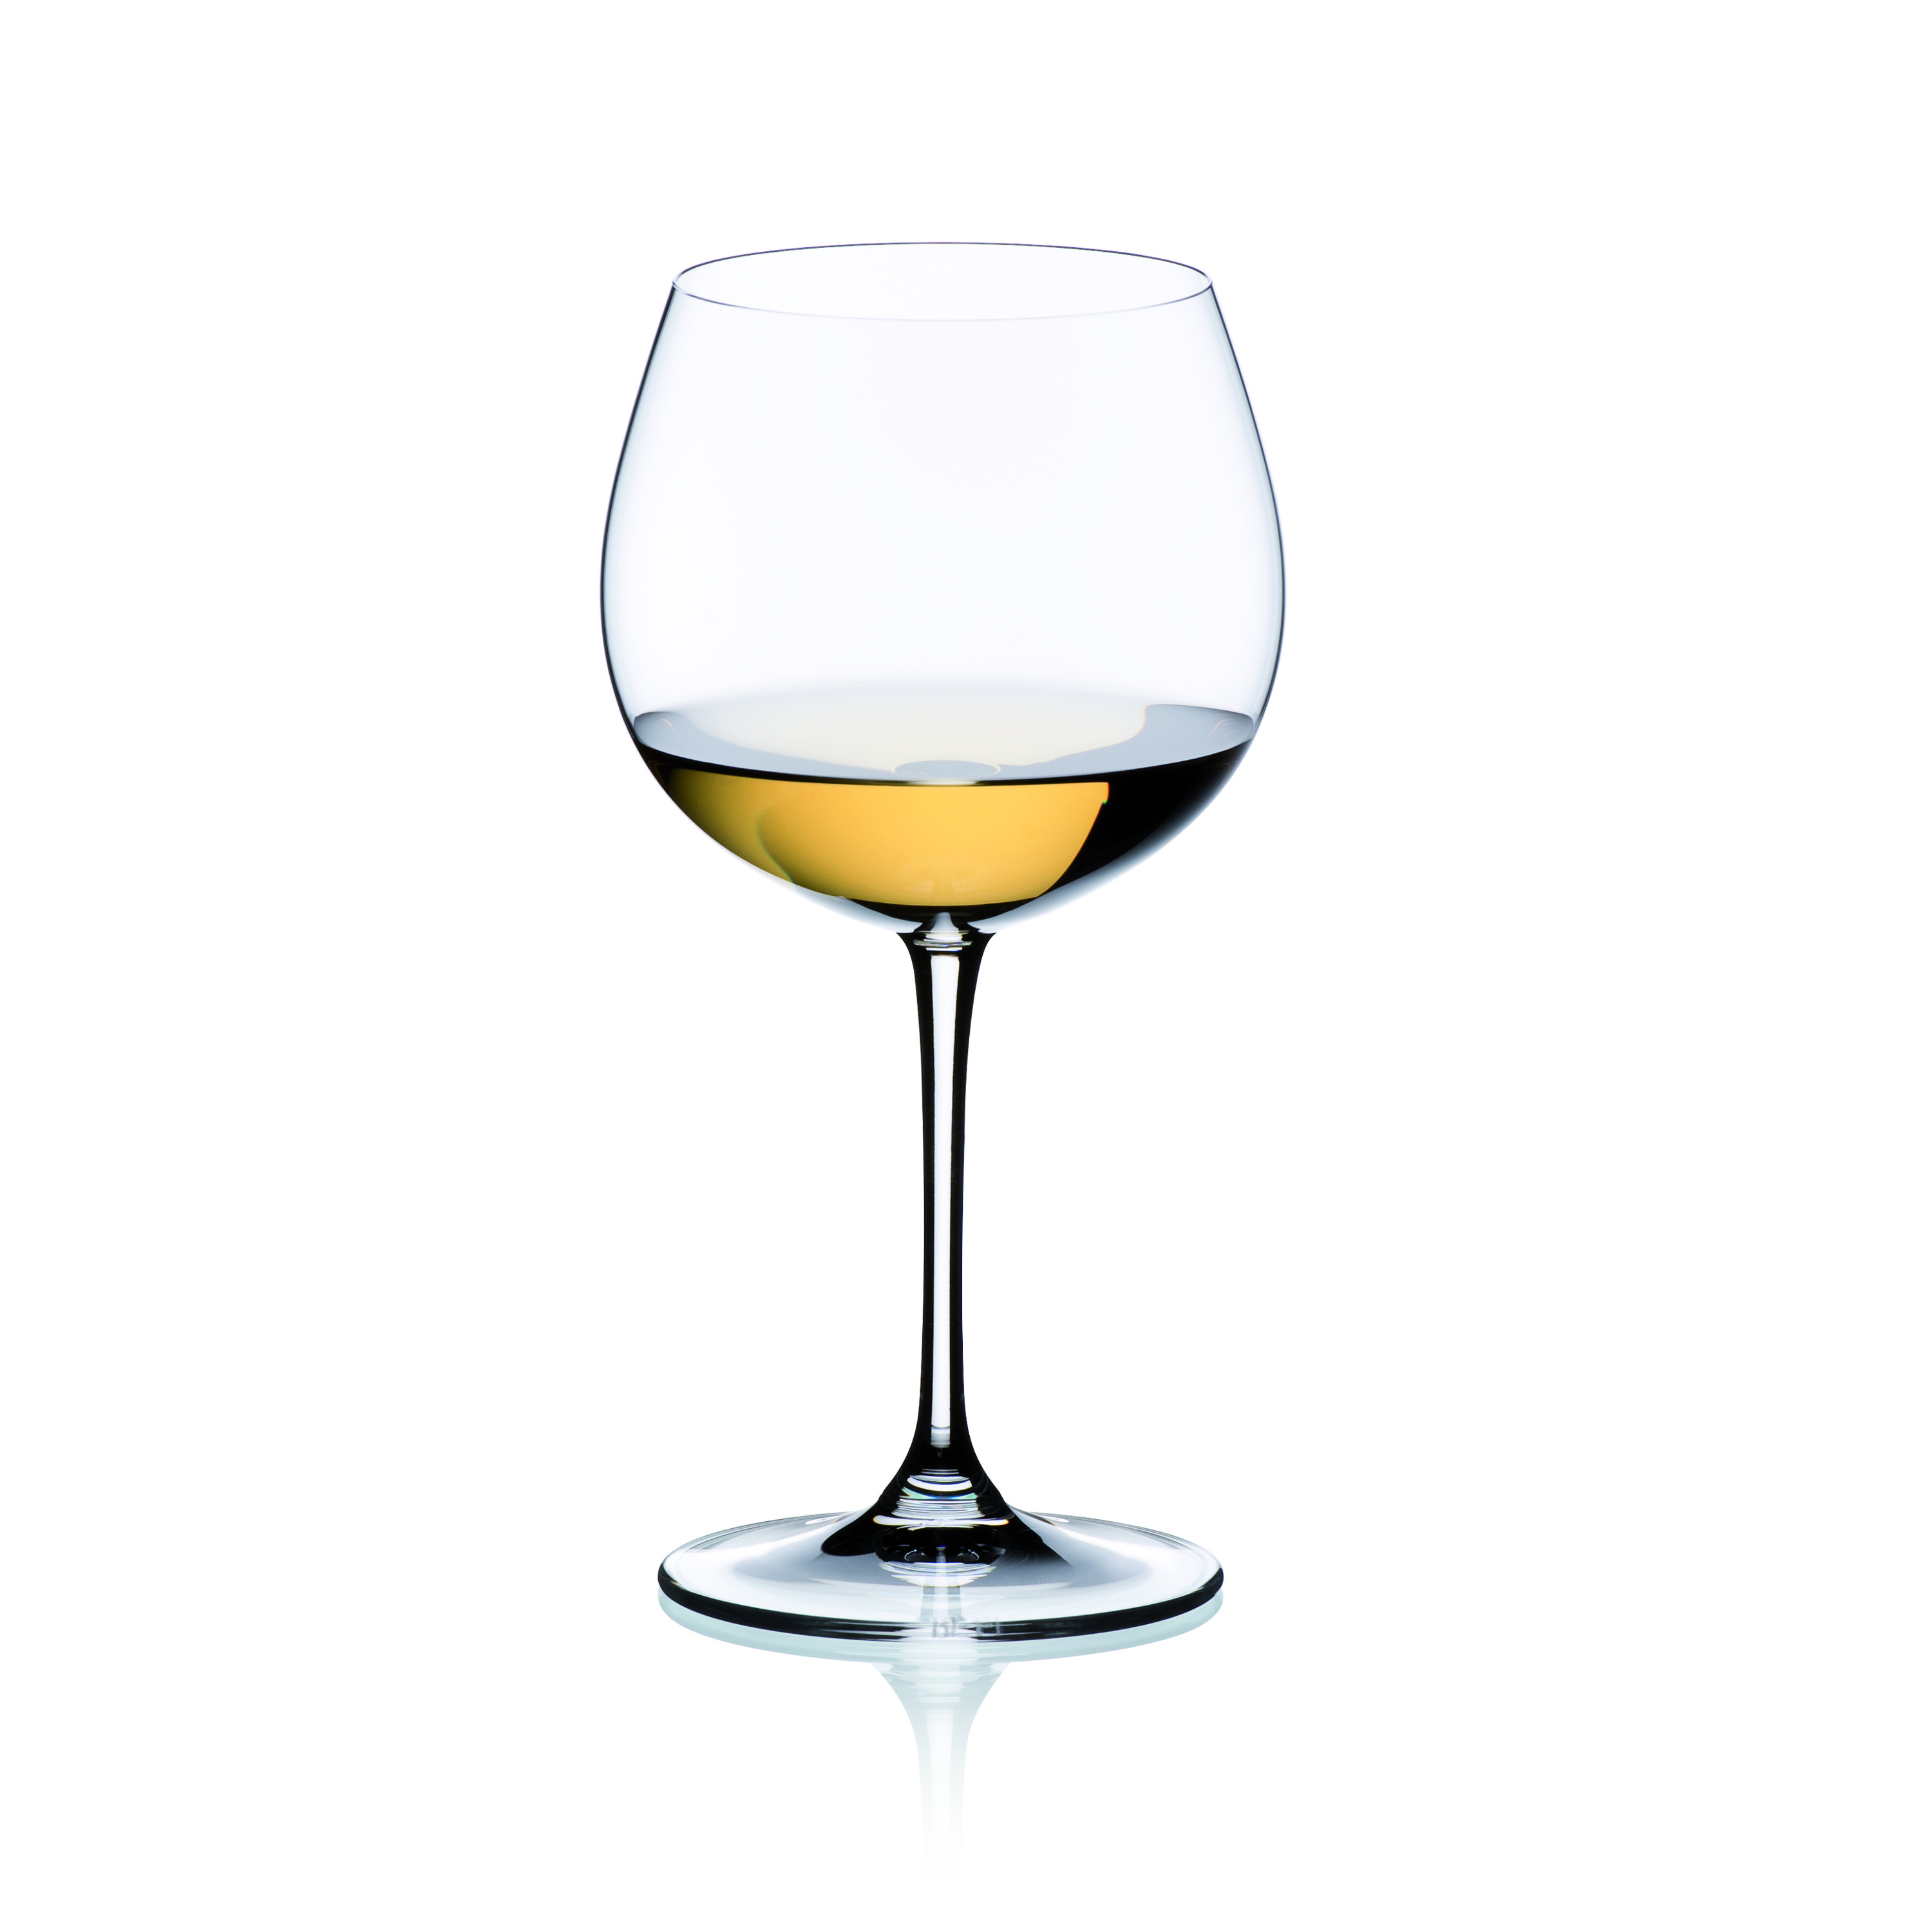 Riedel Vinum XL Leaded Crystal Oaked Chardonnay Glass, Buy 3 Get 4